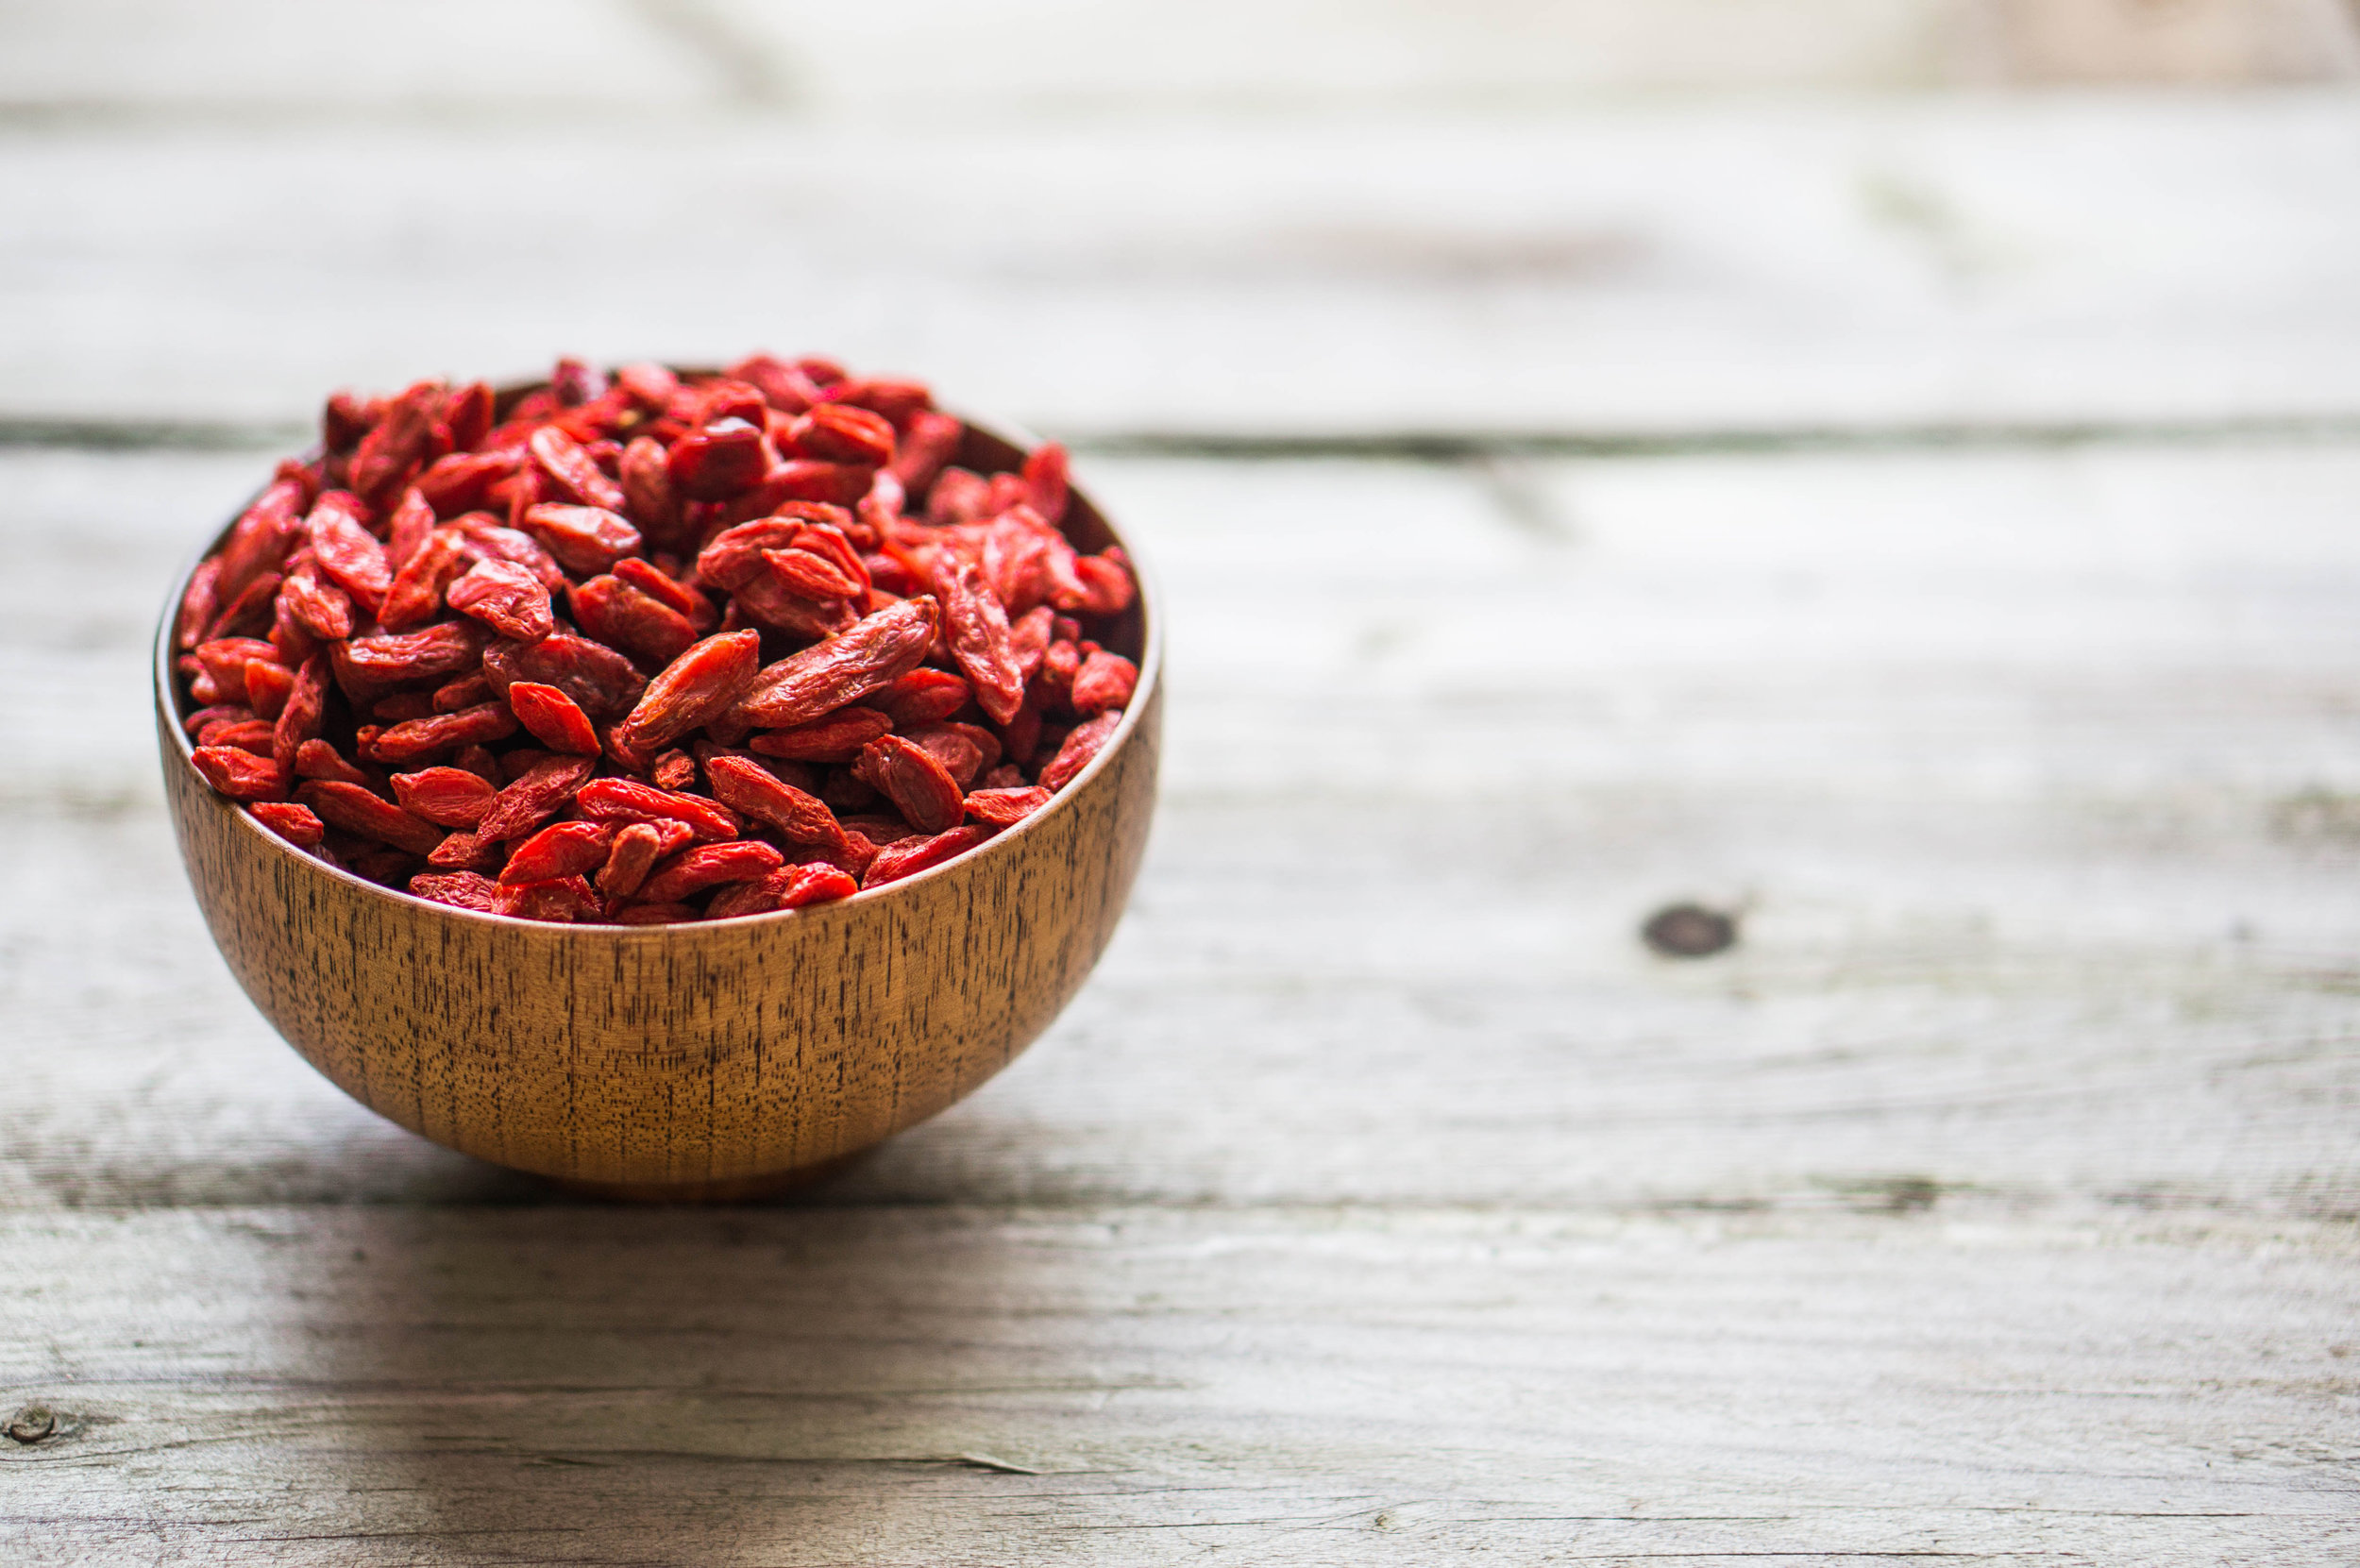 Goji Berries- The Superfood for Health